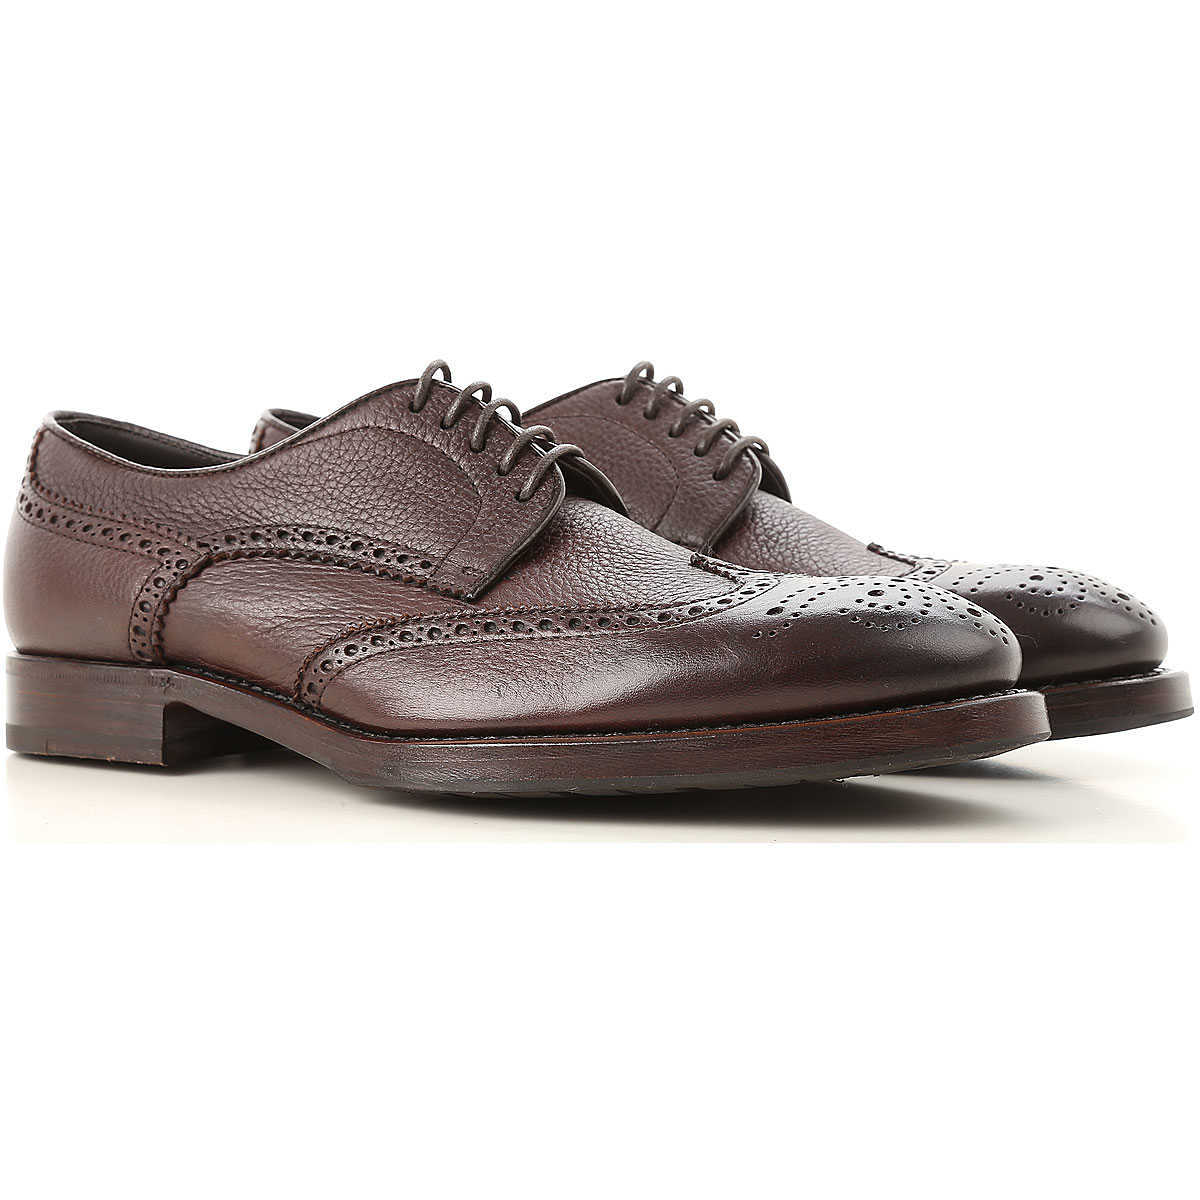 Henderson Lace Up Shoes for Men Oxfords Derbies and Brogues On Sale Canada - GOOFASH - Mens FORMAL SHOES